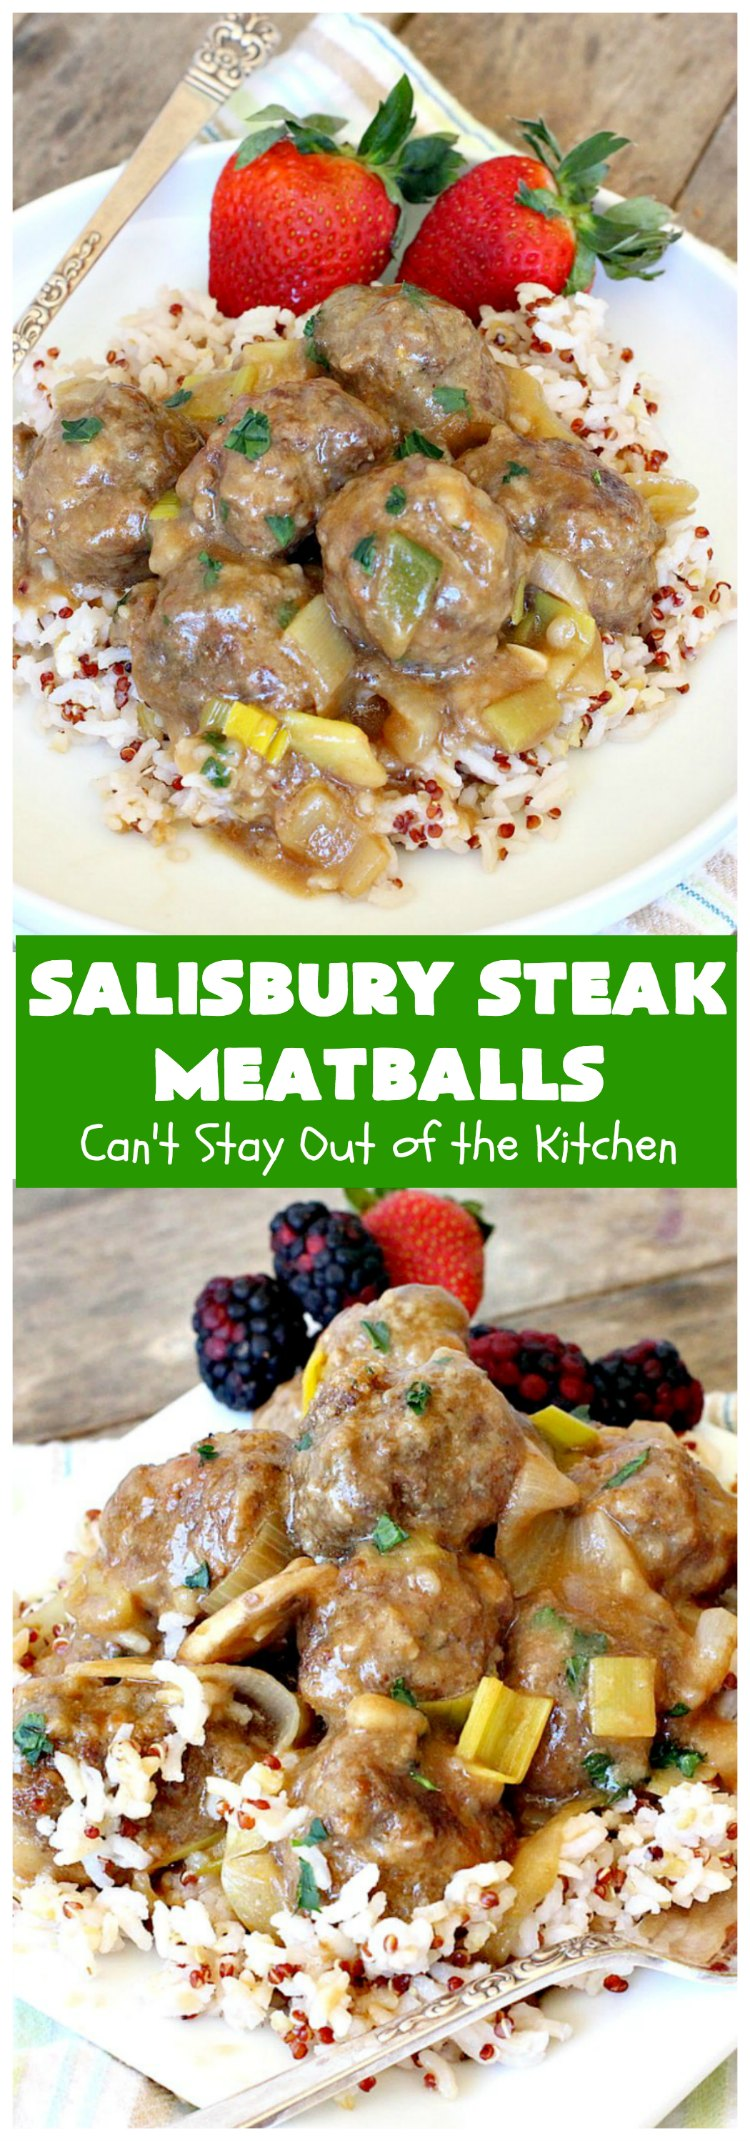 Salisbury Steak Meatballs | Can't Stay Out of the Kitchen